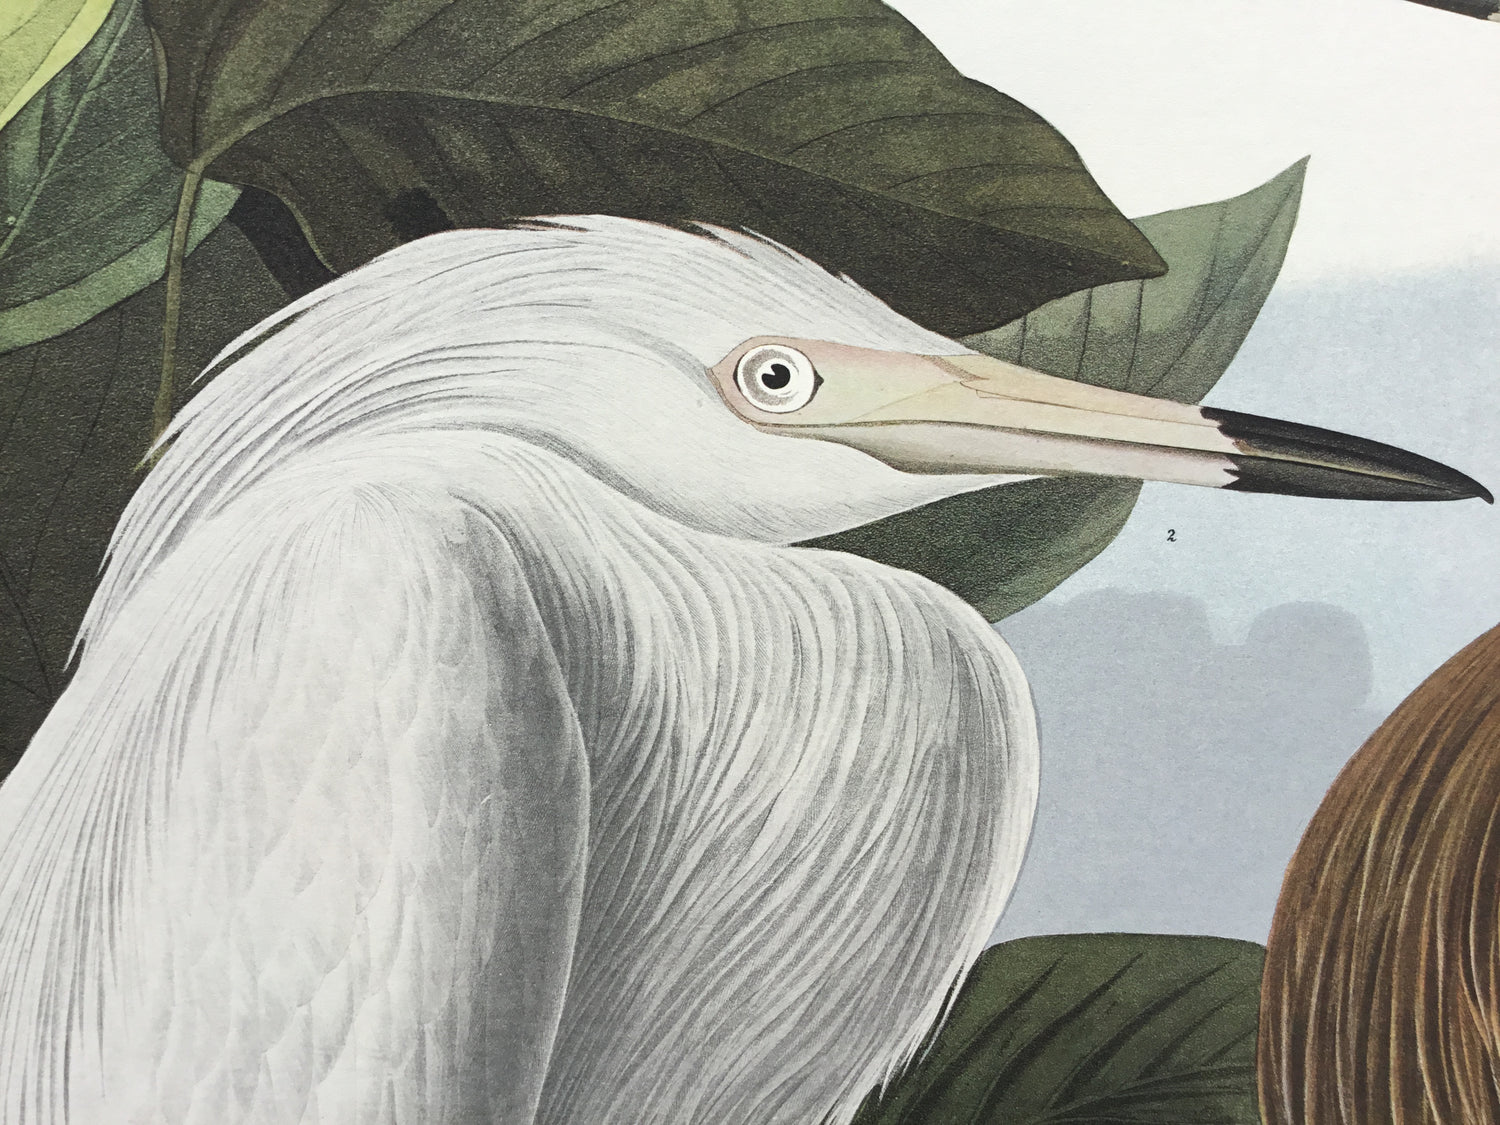 Purple Heron, plate 256, Princeton Audubon Double Elephant Edition. 26 1/4 x 39 1/4. This print initiated the New York Times online store some years back and is now close to sold out status.